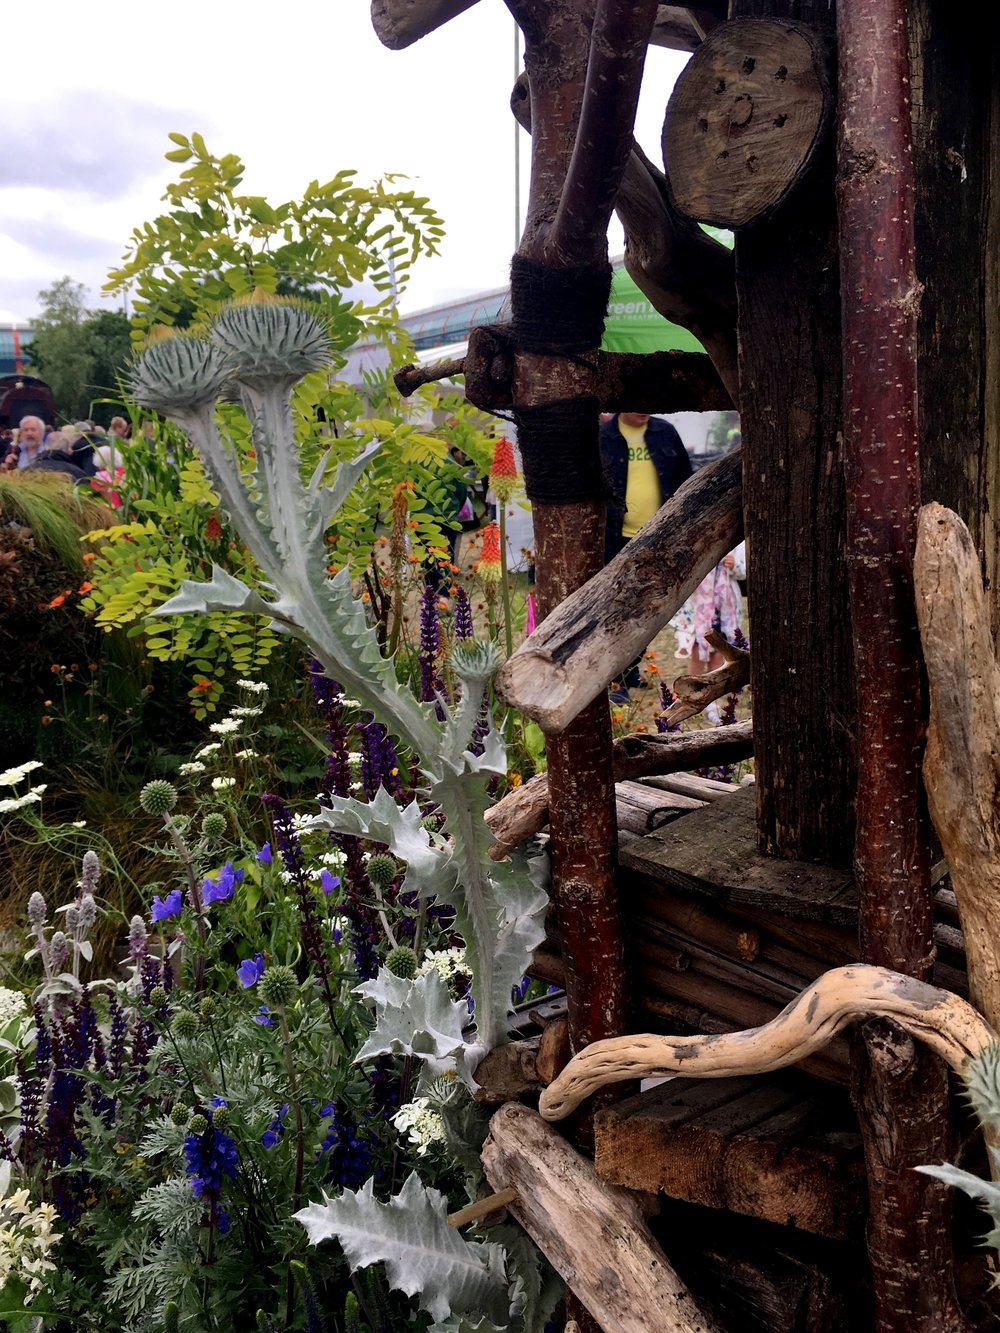 Driftwood and thistles